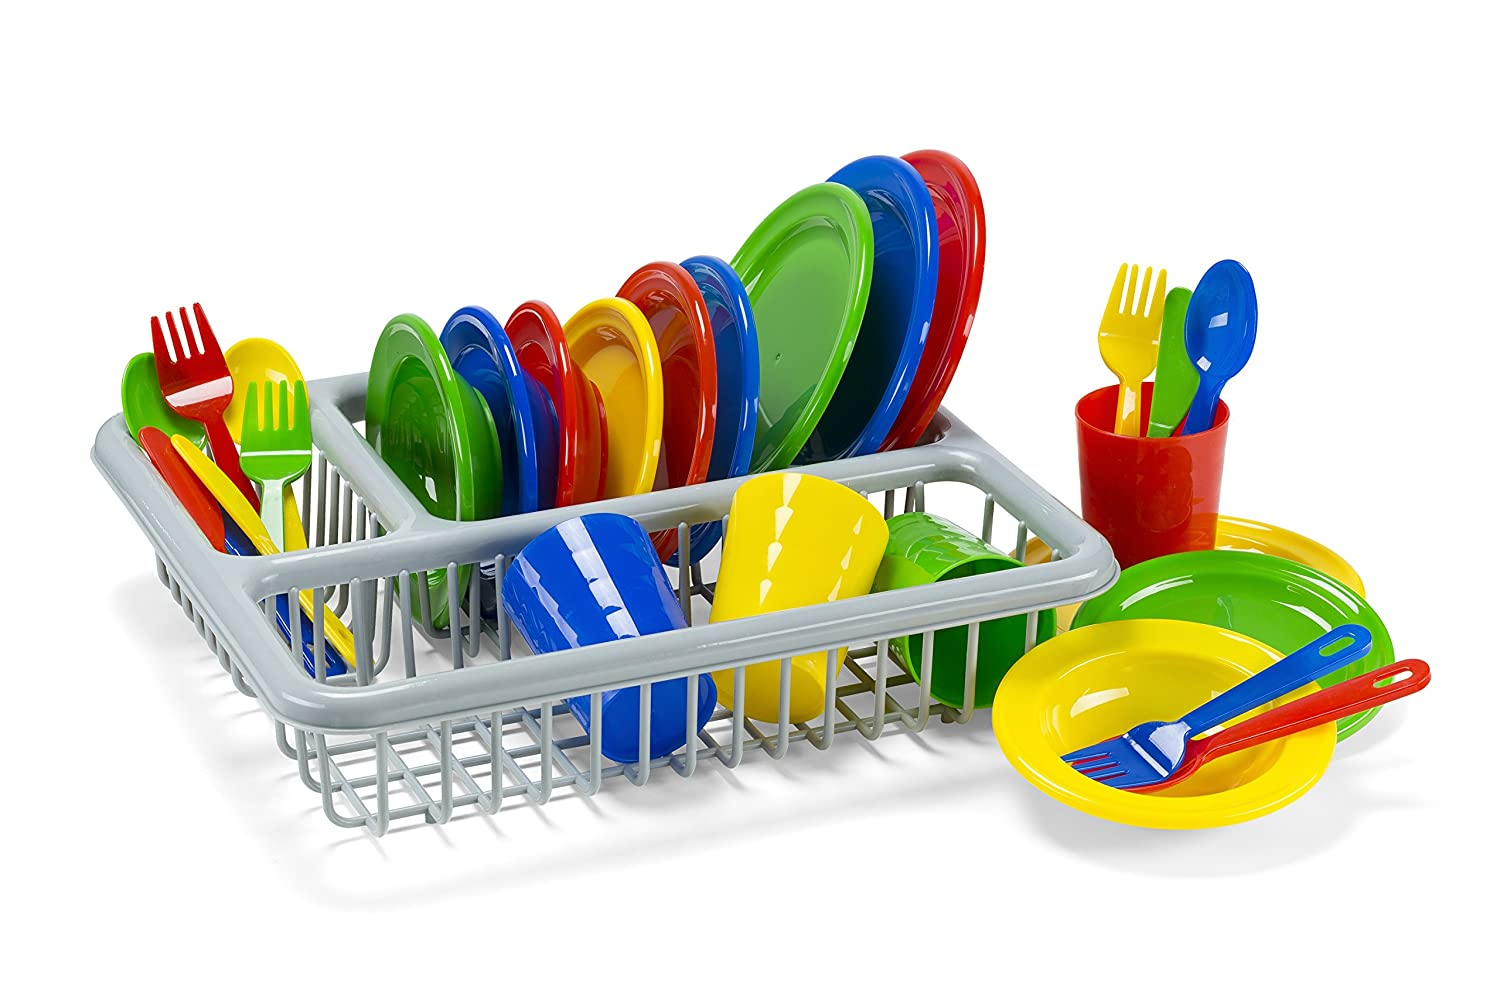 Kidzlane Durable Kids Play Dishes - Pretend Play Childrens Dish Set - 29 Piece with Drainer